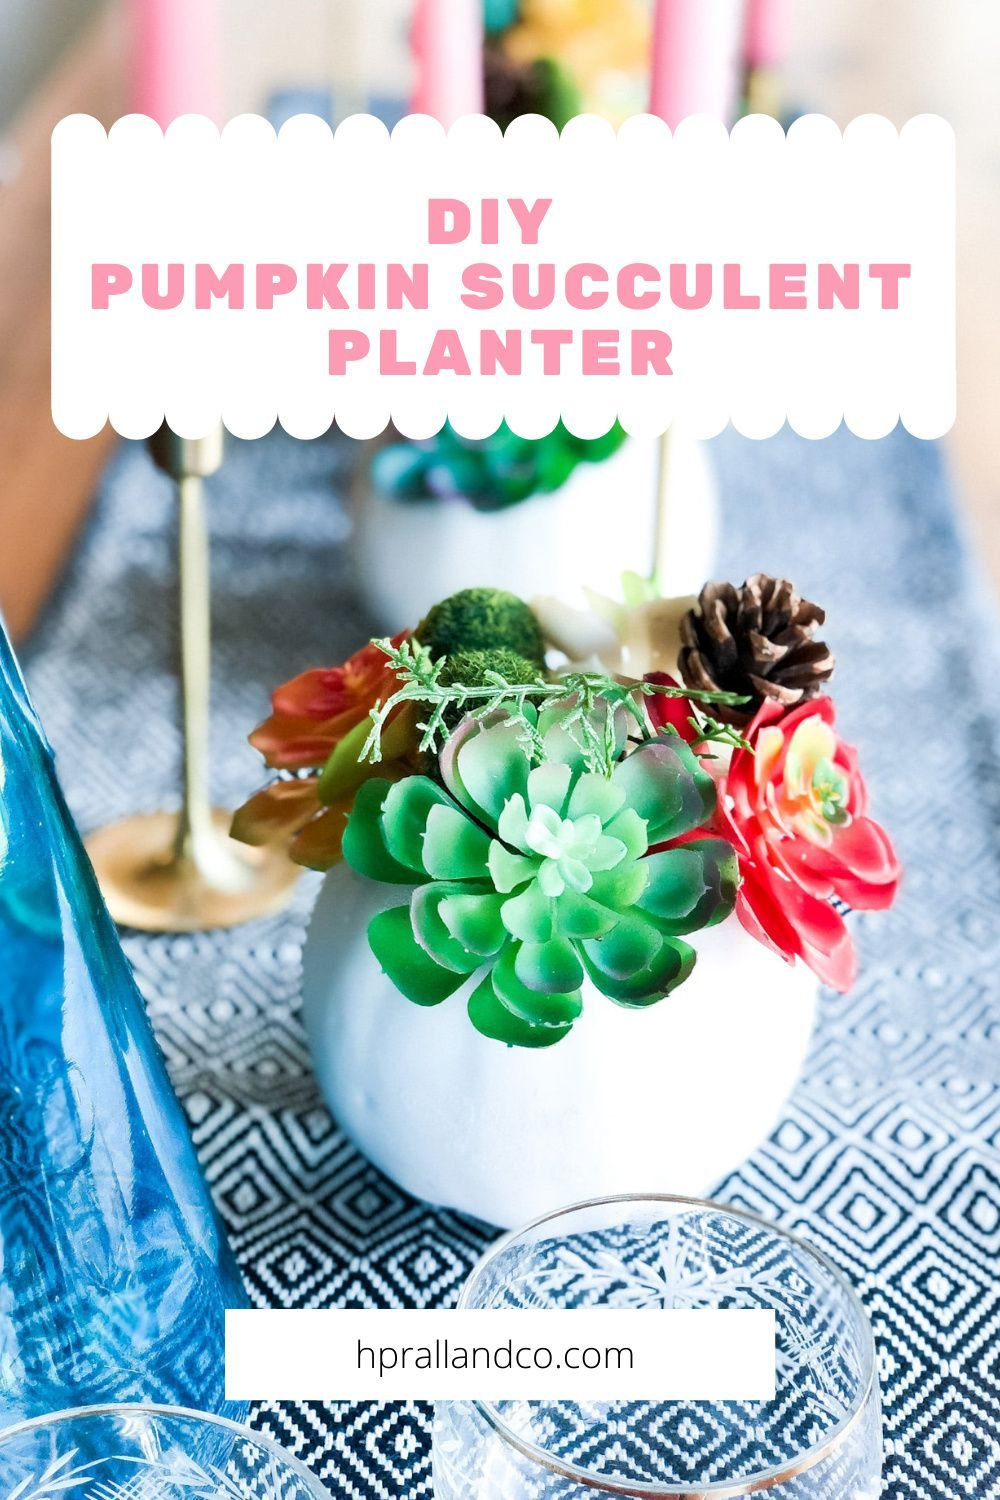 Fall // Fall Decor // Thanksgiving // DIY Decor // DIY Projects // Succulents // Centerpiece // Placecard Holder // Hostess Gift // Pumpkins // #Fall #Falldecor #Thanksgiving #DIYdecor #DIYprojects #Succulents #Centerpiece #Placecardholder #Hostessgift #Pumpkins